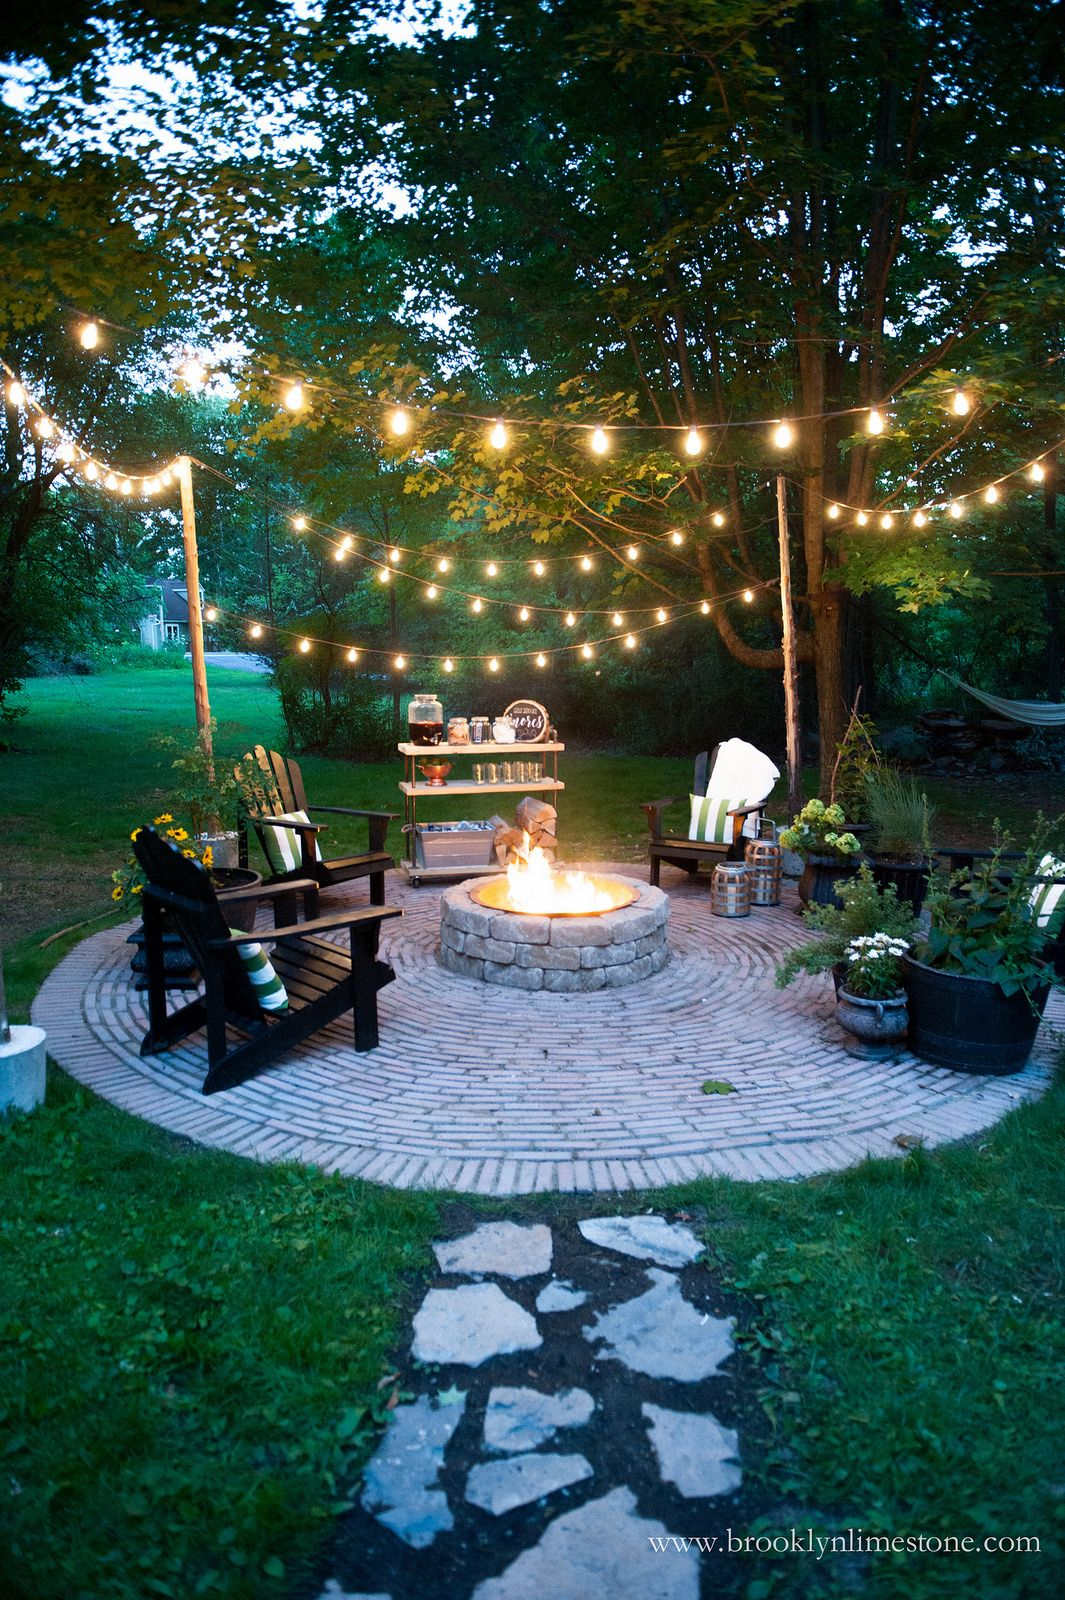 18 Fire Pit Ideas For Your Backyard Home Decor Ideas Backyard inside 15 Smart Concepts of How to Make Fire Pit Ideas For Small Backyard